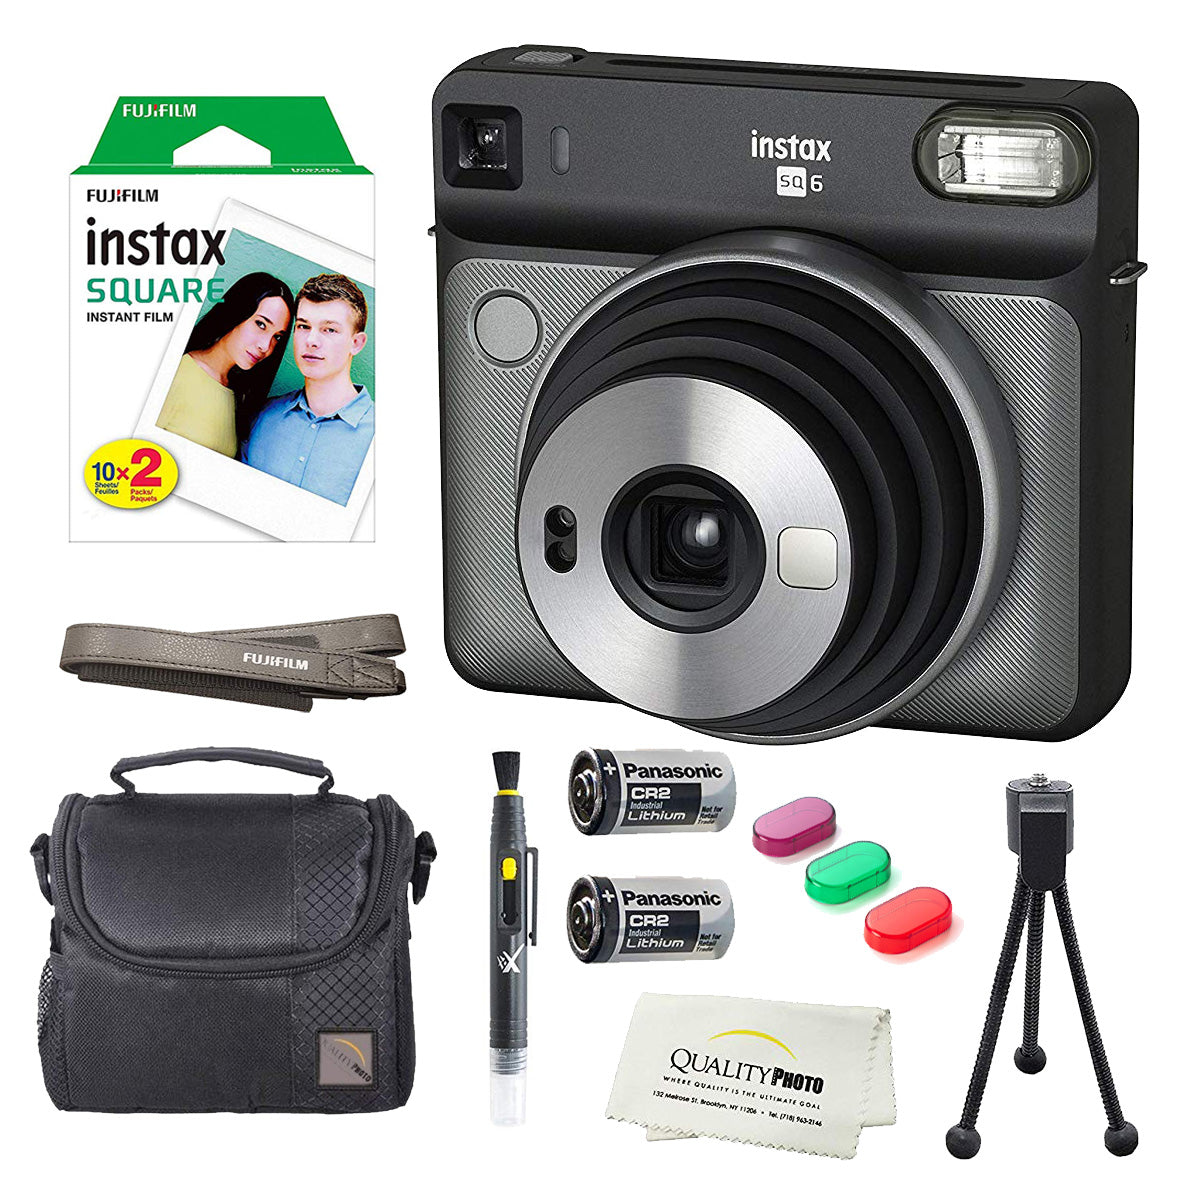 Fujifilm Instax Square SQ6 Instant Film Camera(Graphite Gray)+2 Pack of 10 Instax Square Wide Films+ Camera Bag, Tripod, 2in1 Spray & Brush Lens Pen, and Quality Photo Microfiber Cloth